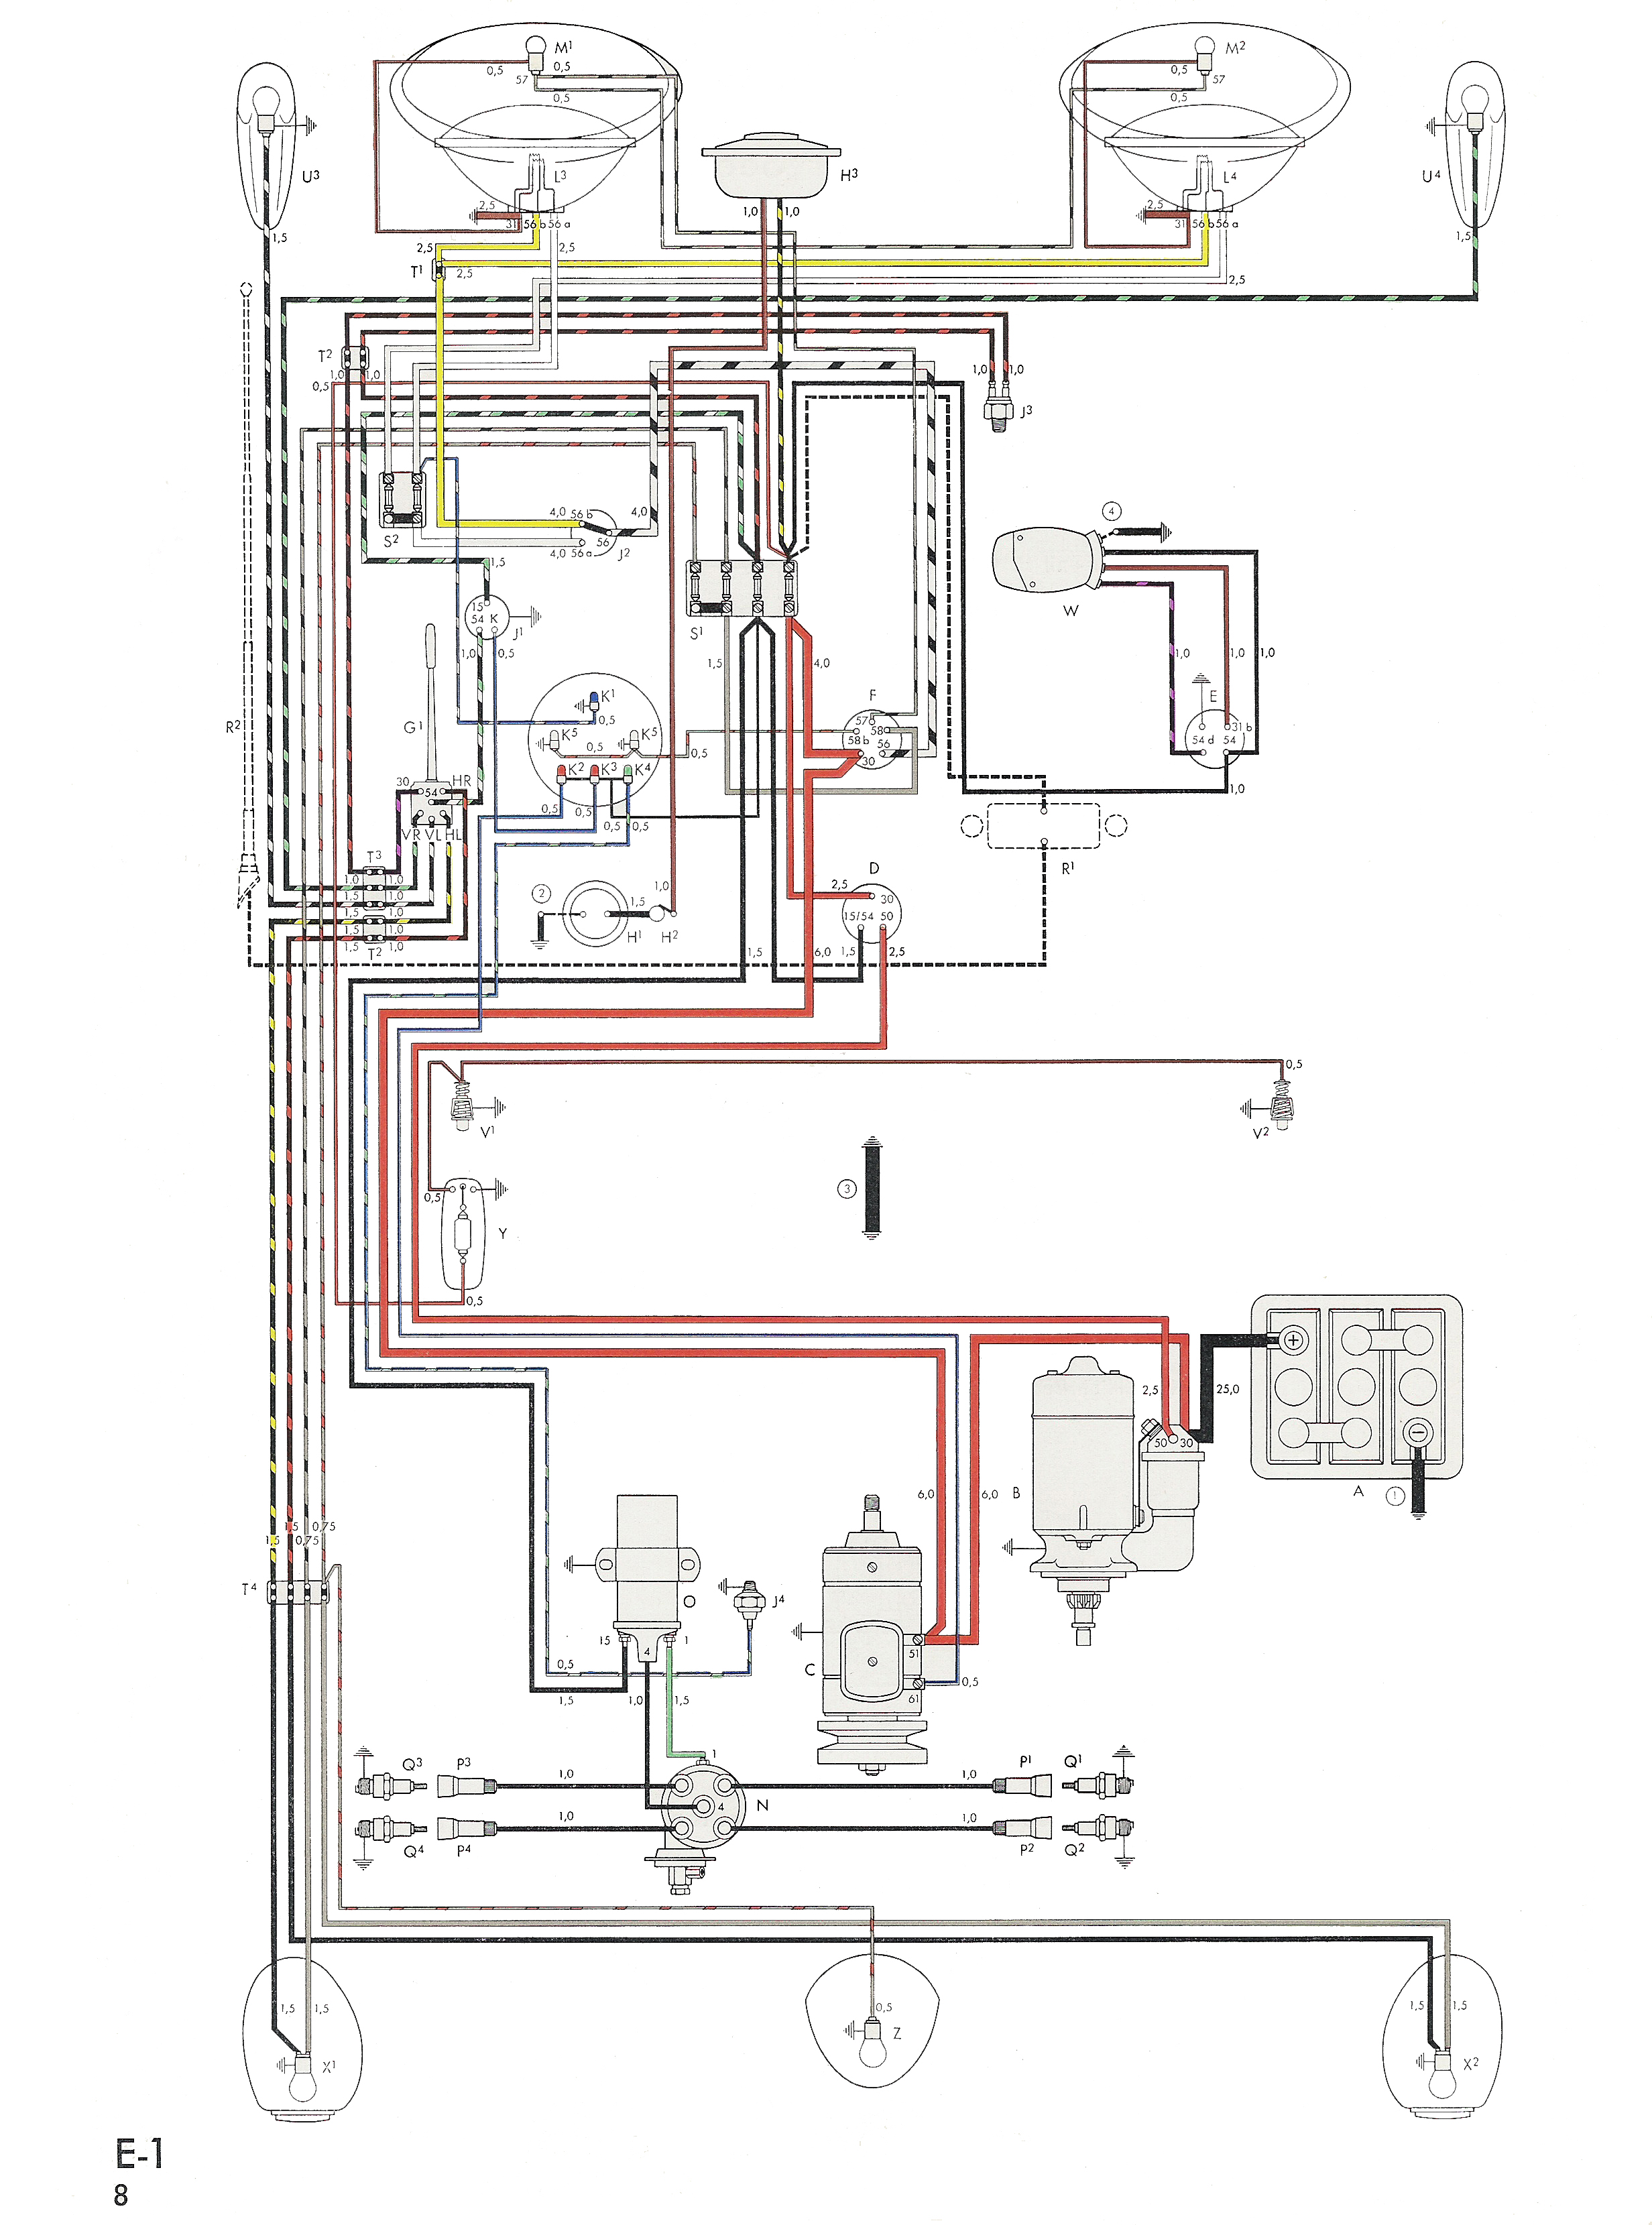 thesamba com type 1 wiring diagrams rh thesamba com 74 super beetle wiring diagram 74 vw super beetle wiring diagram